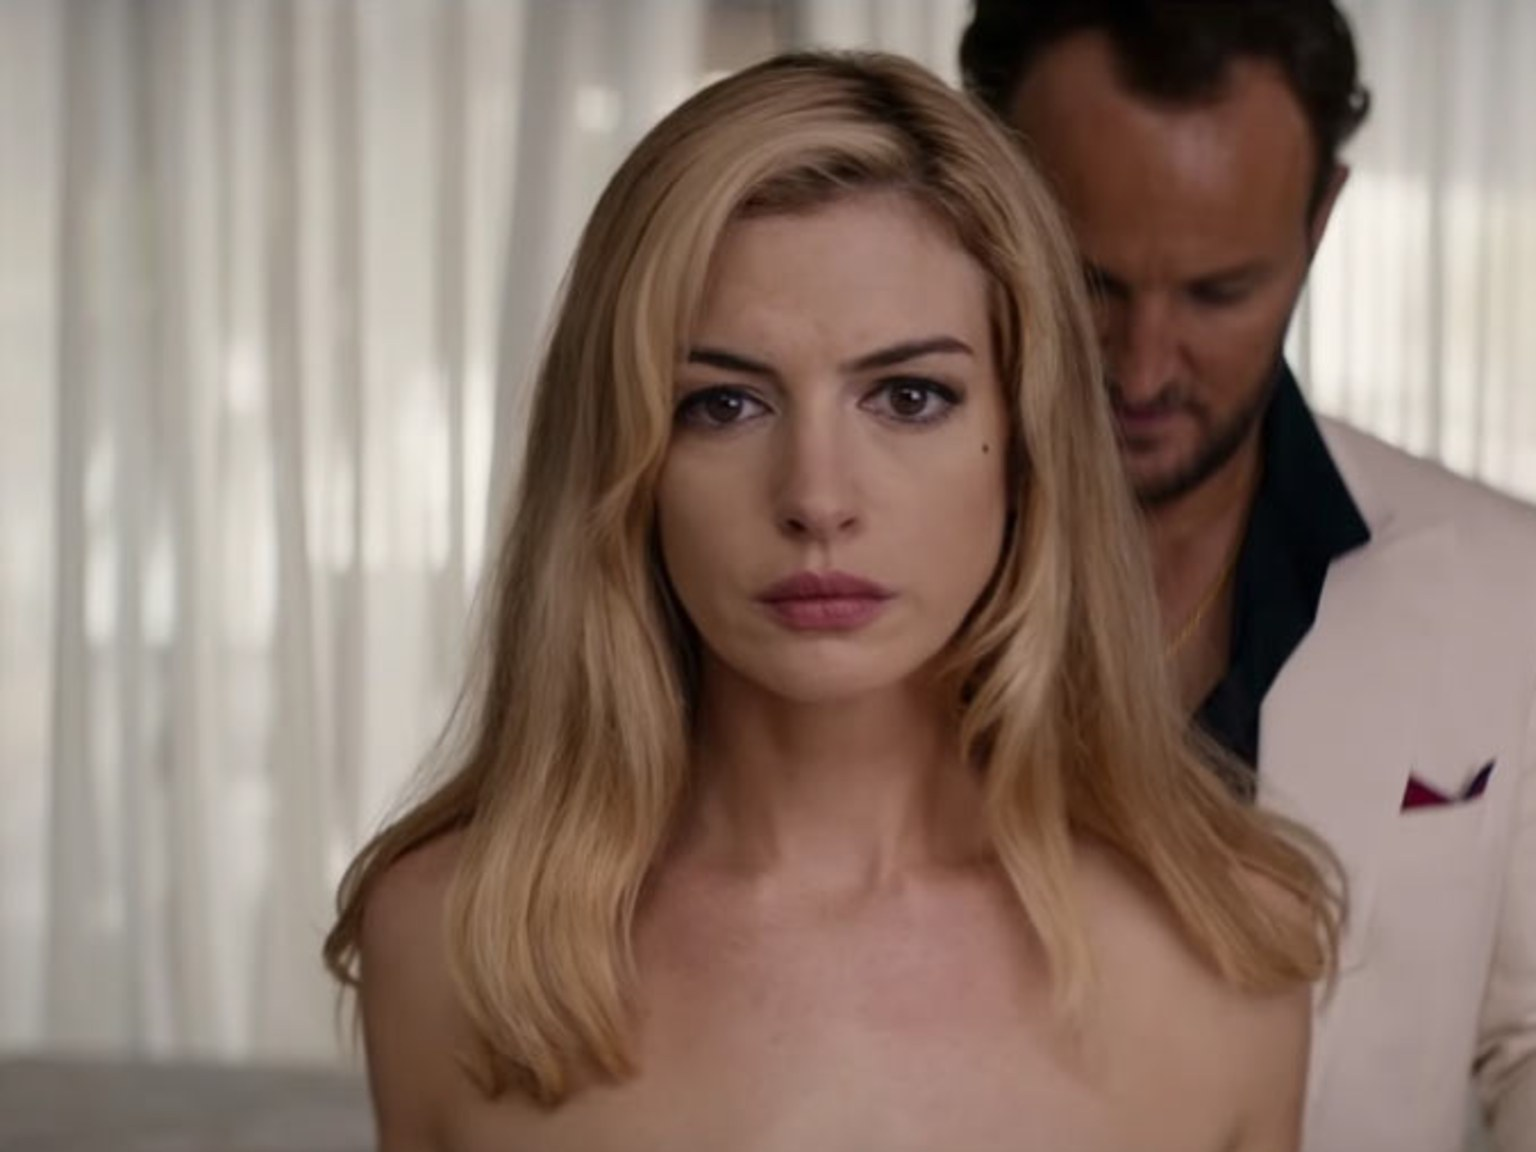 Anne Hathaway in Serenity